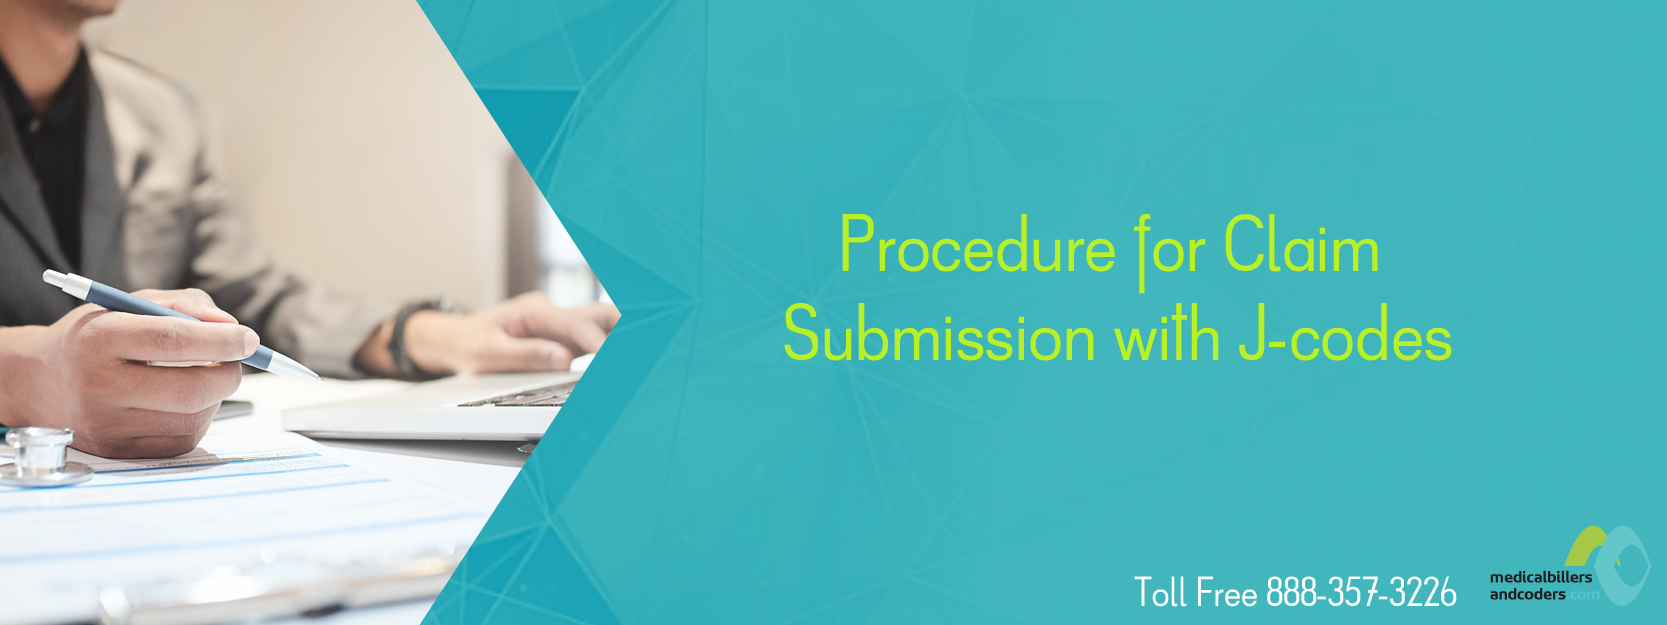 blog-procedure-for-claim-submission-with-j-codes